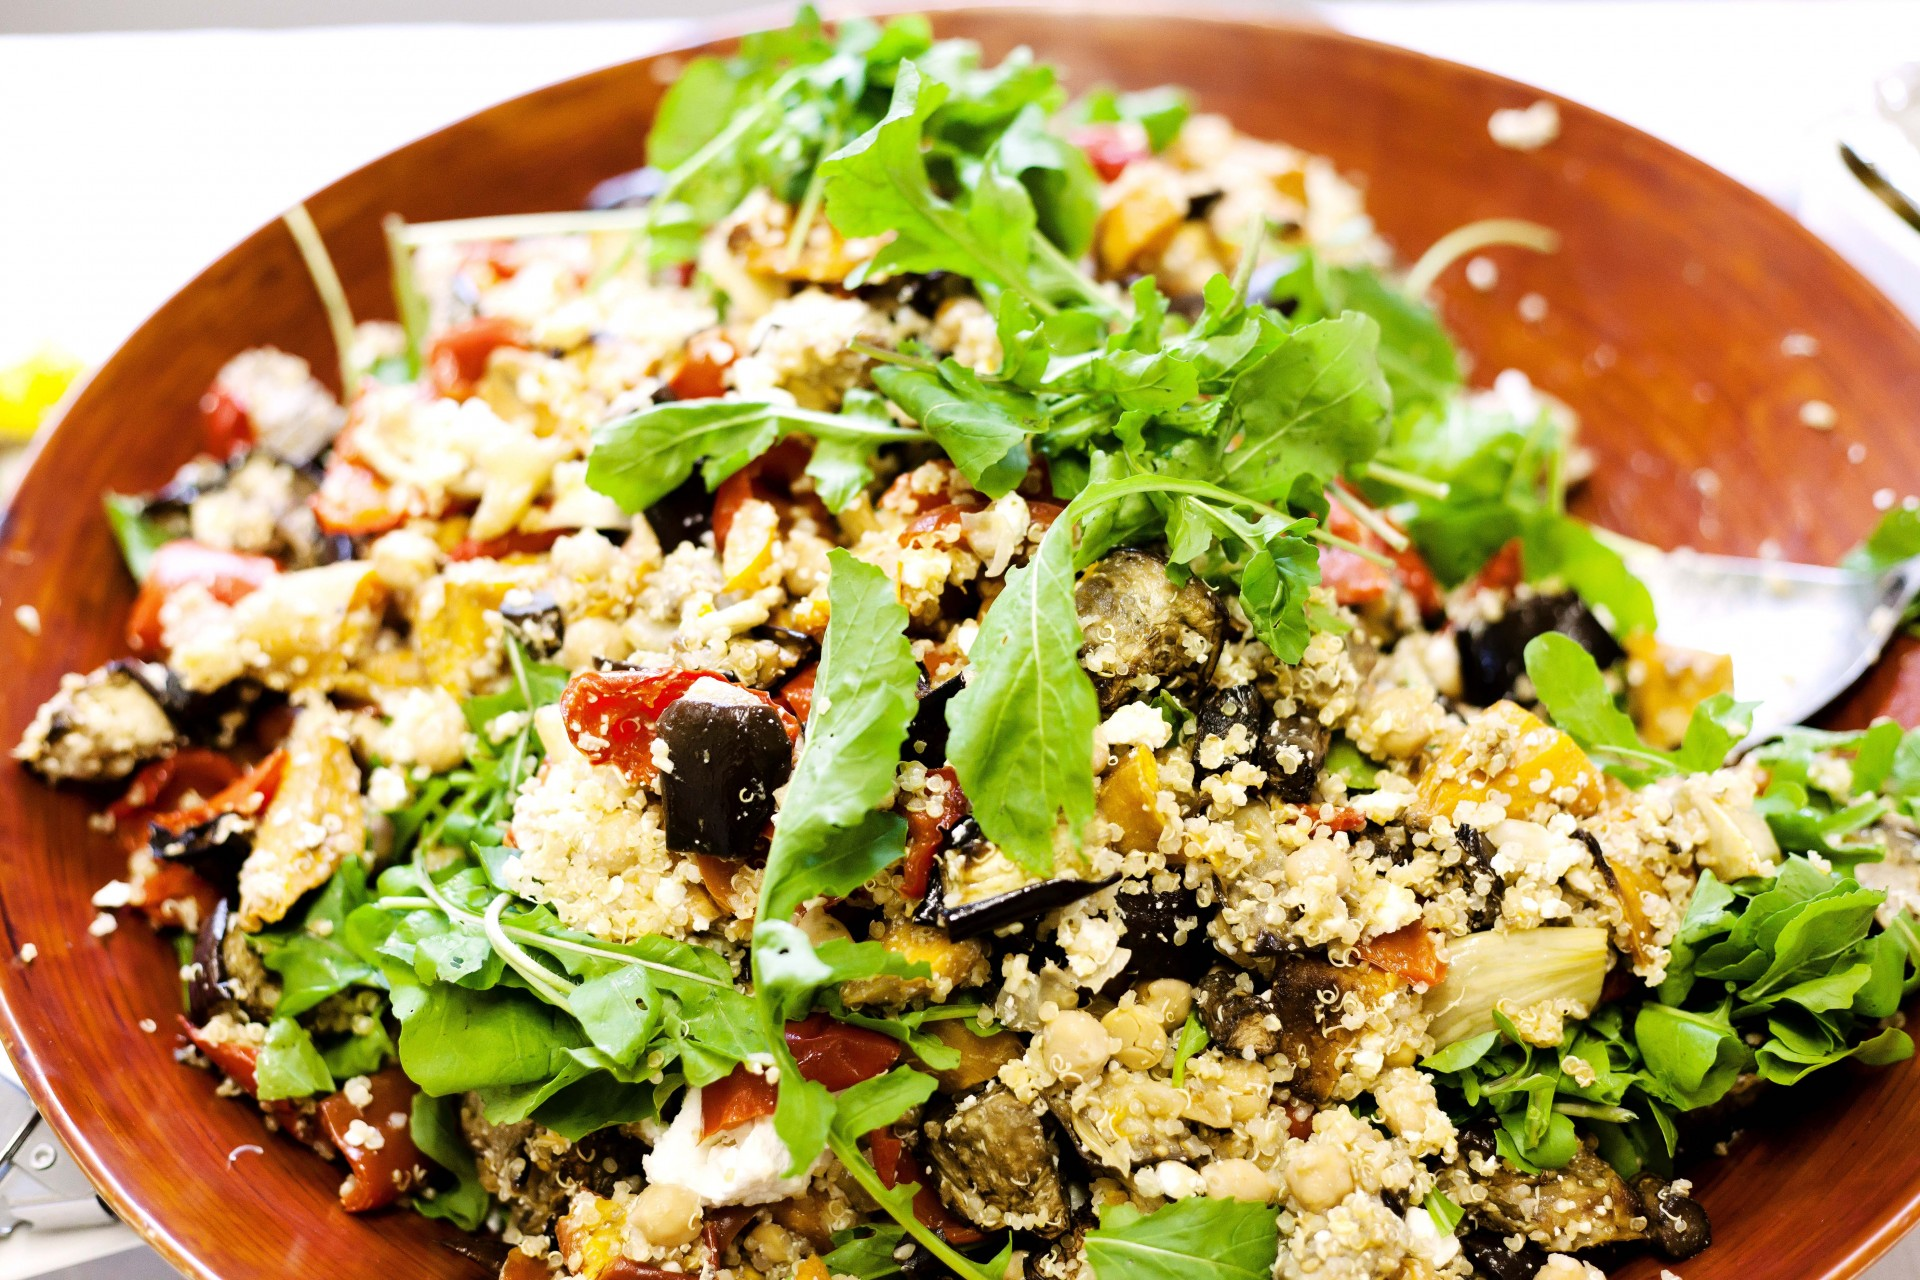 Mediterranian-and-quinoa-salad-with-goats-cheese-and-rocket-wedding-in-the-hinterland-Byron-Bay-vmphotography.com_.au--e1373849779181.jpg